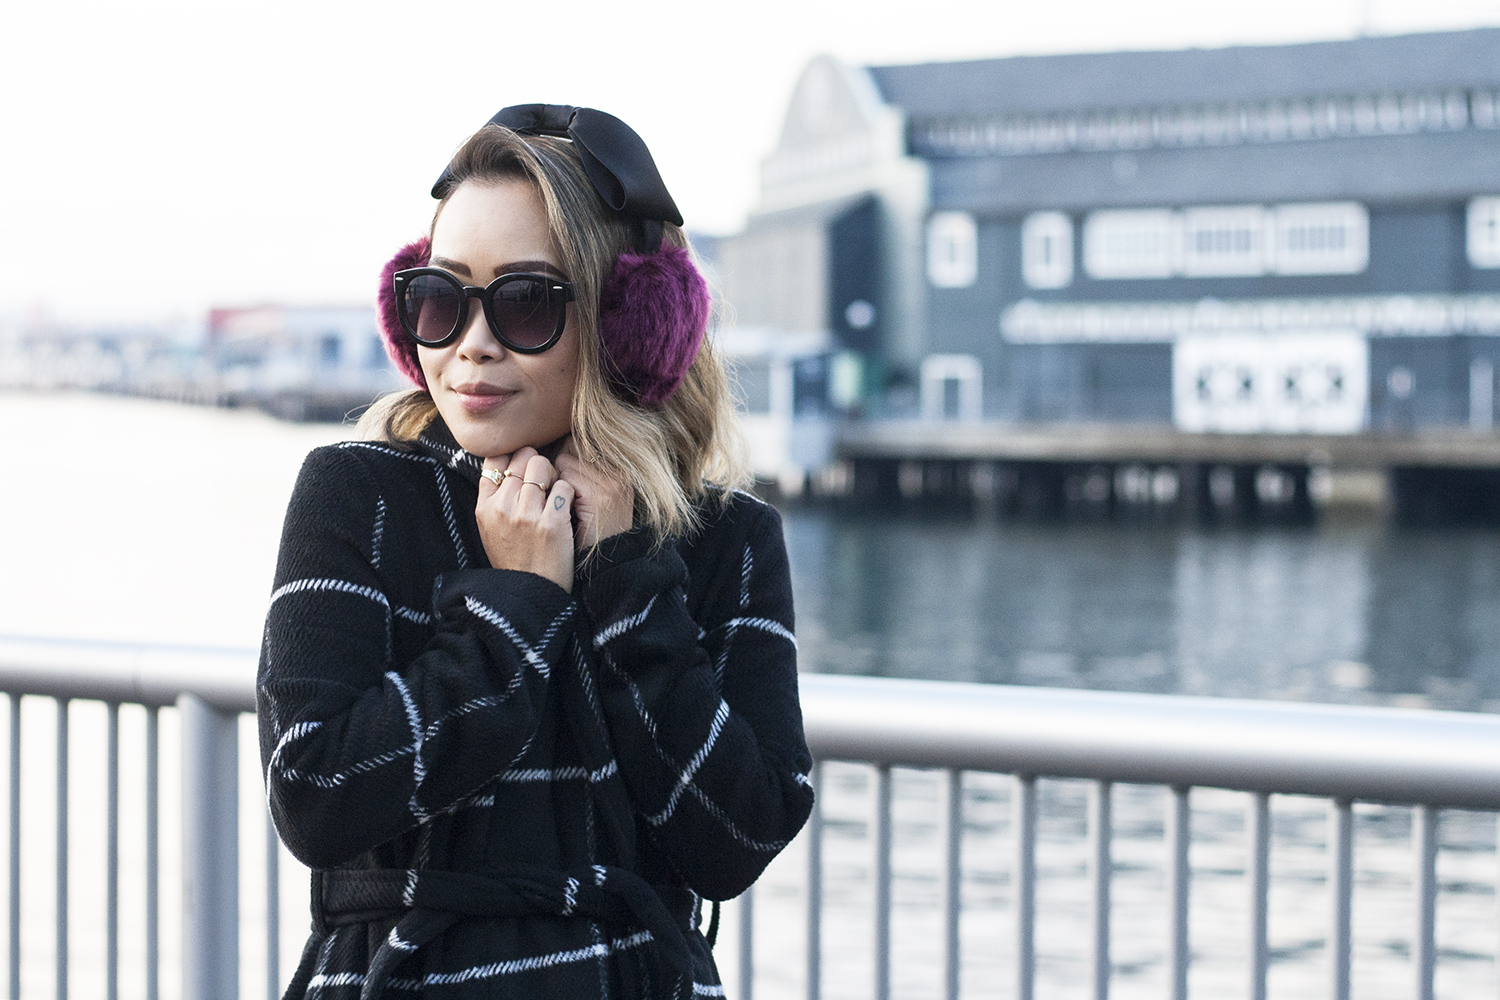 02seattle-travel-fashion-style-katespade-earmuffs